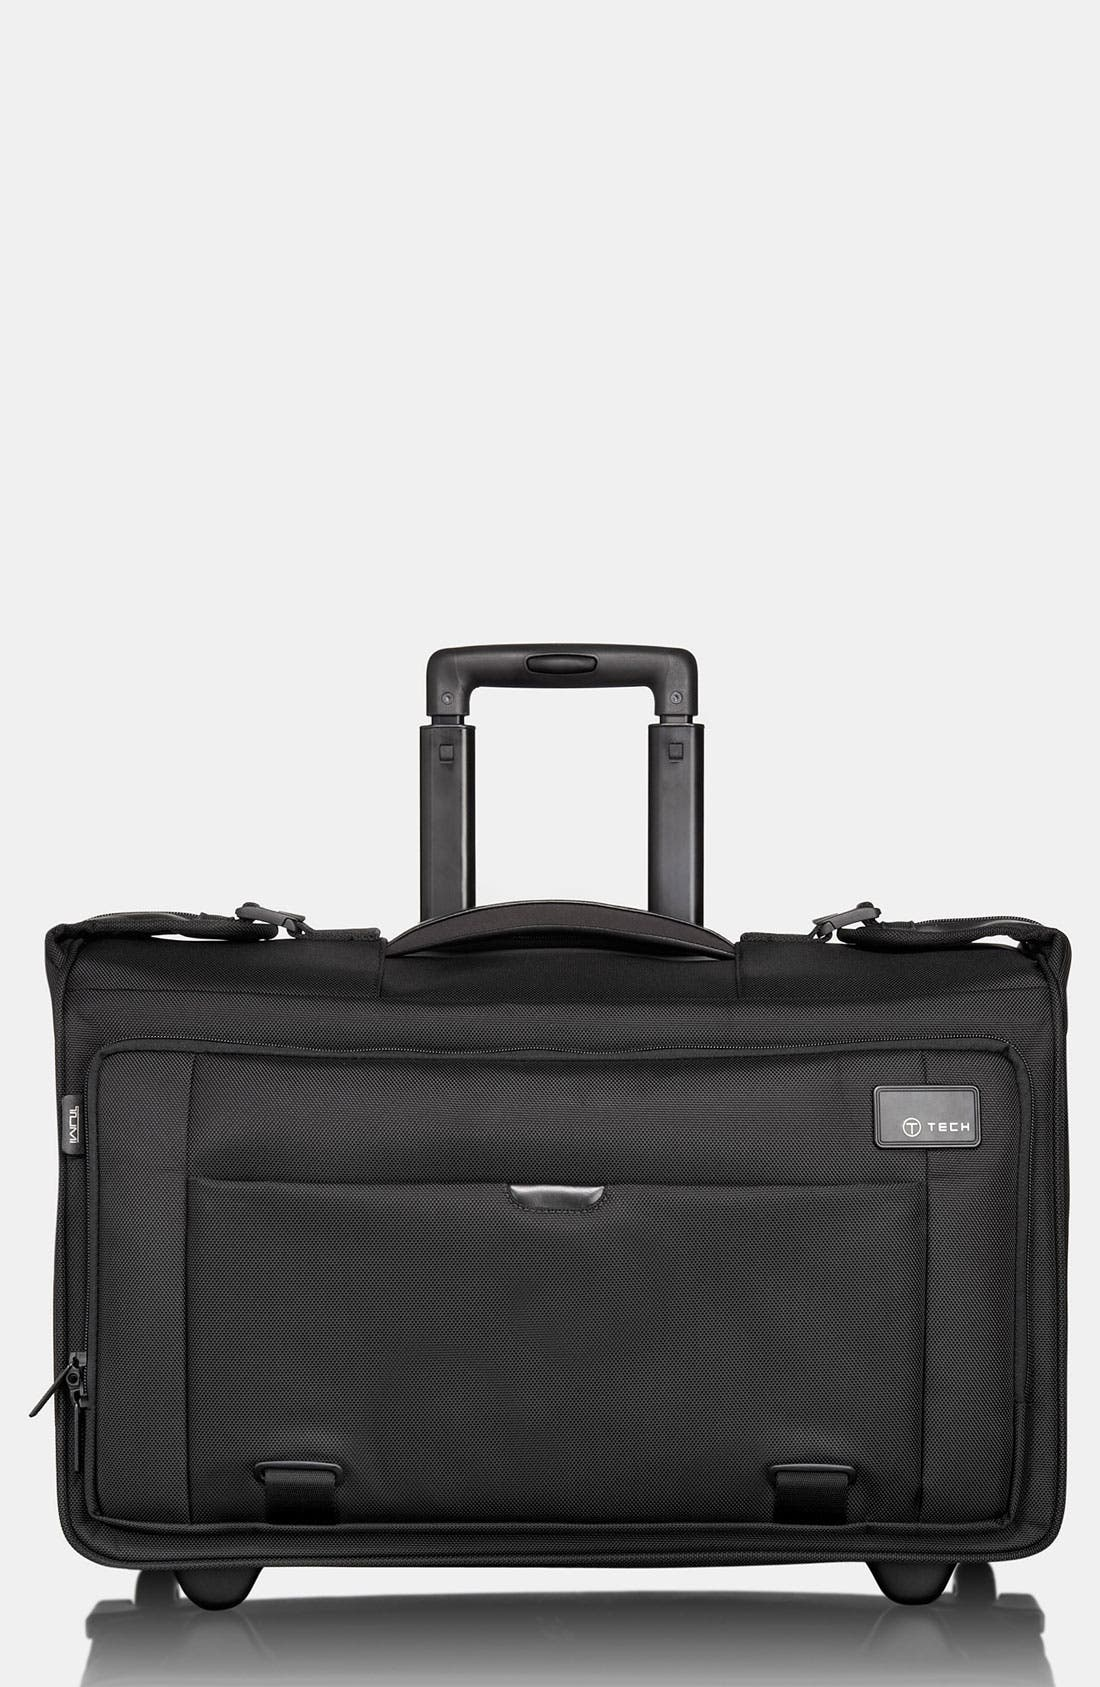 Alternate Image 1 Selected - Tumi 'T-Tech Network' Wheeled Carry-On Garment Bag (22 Inch)